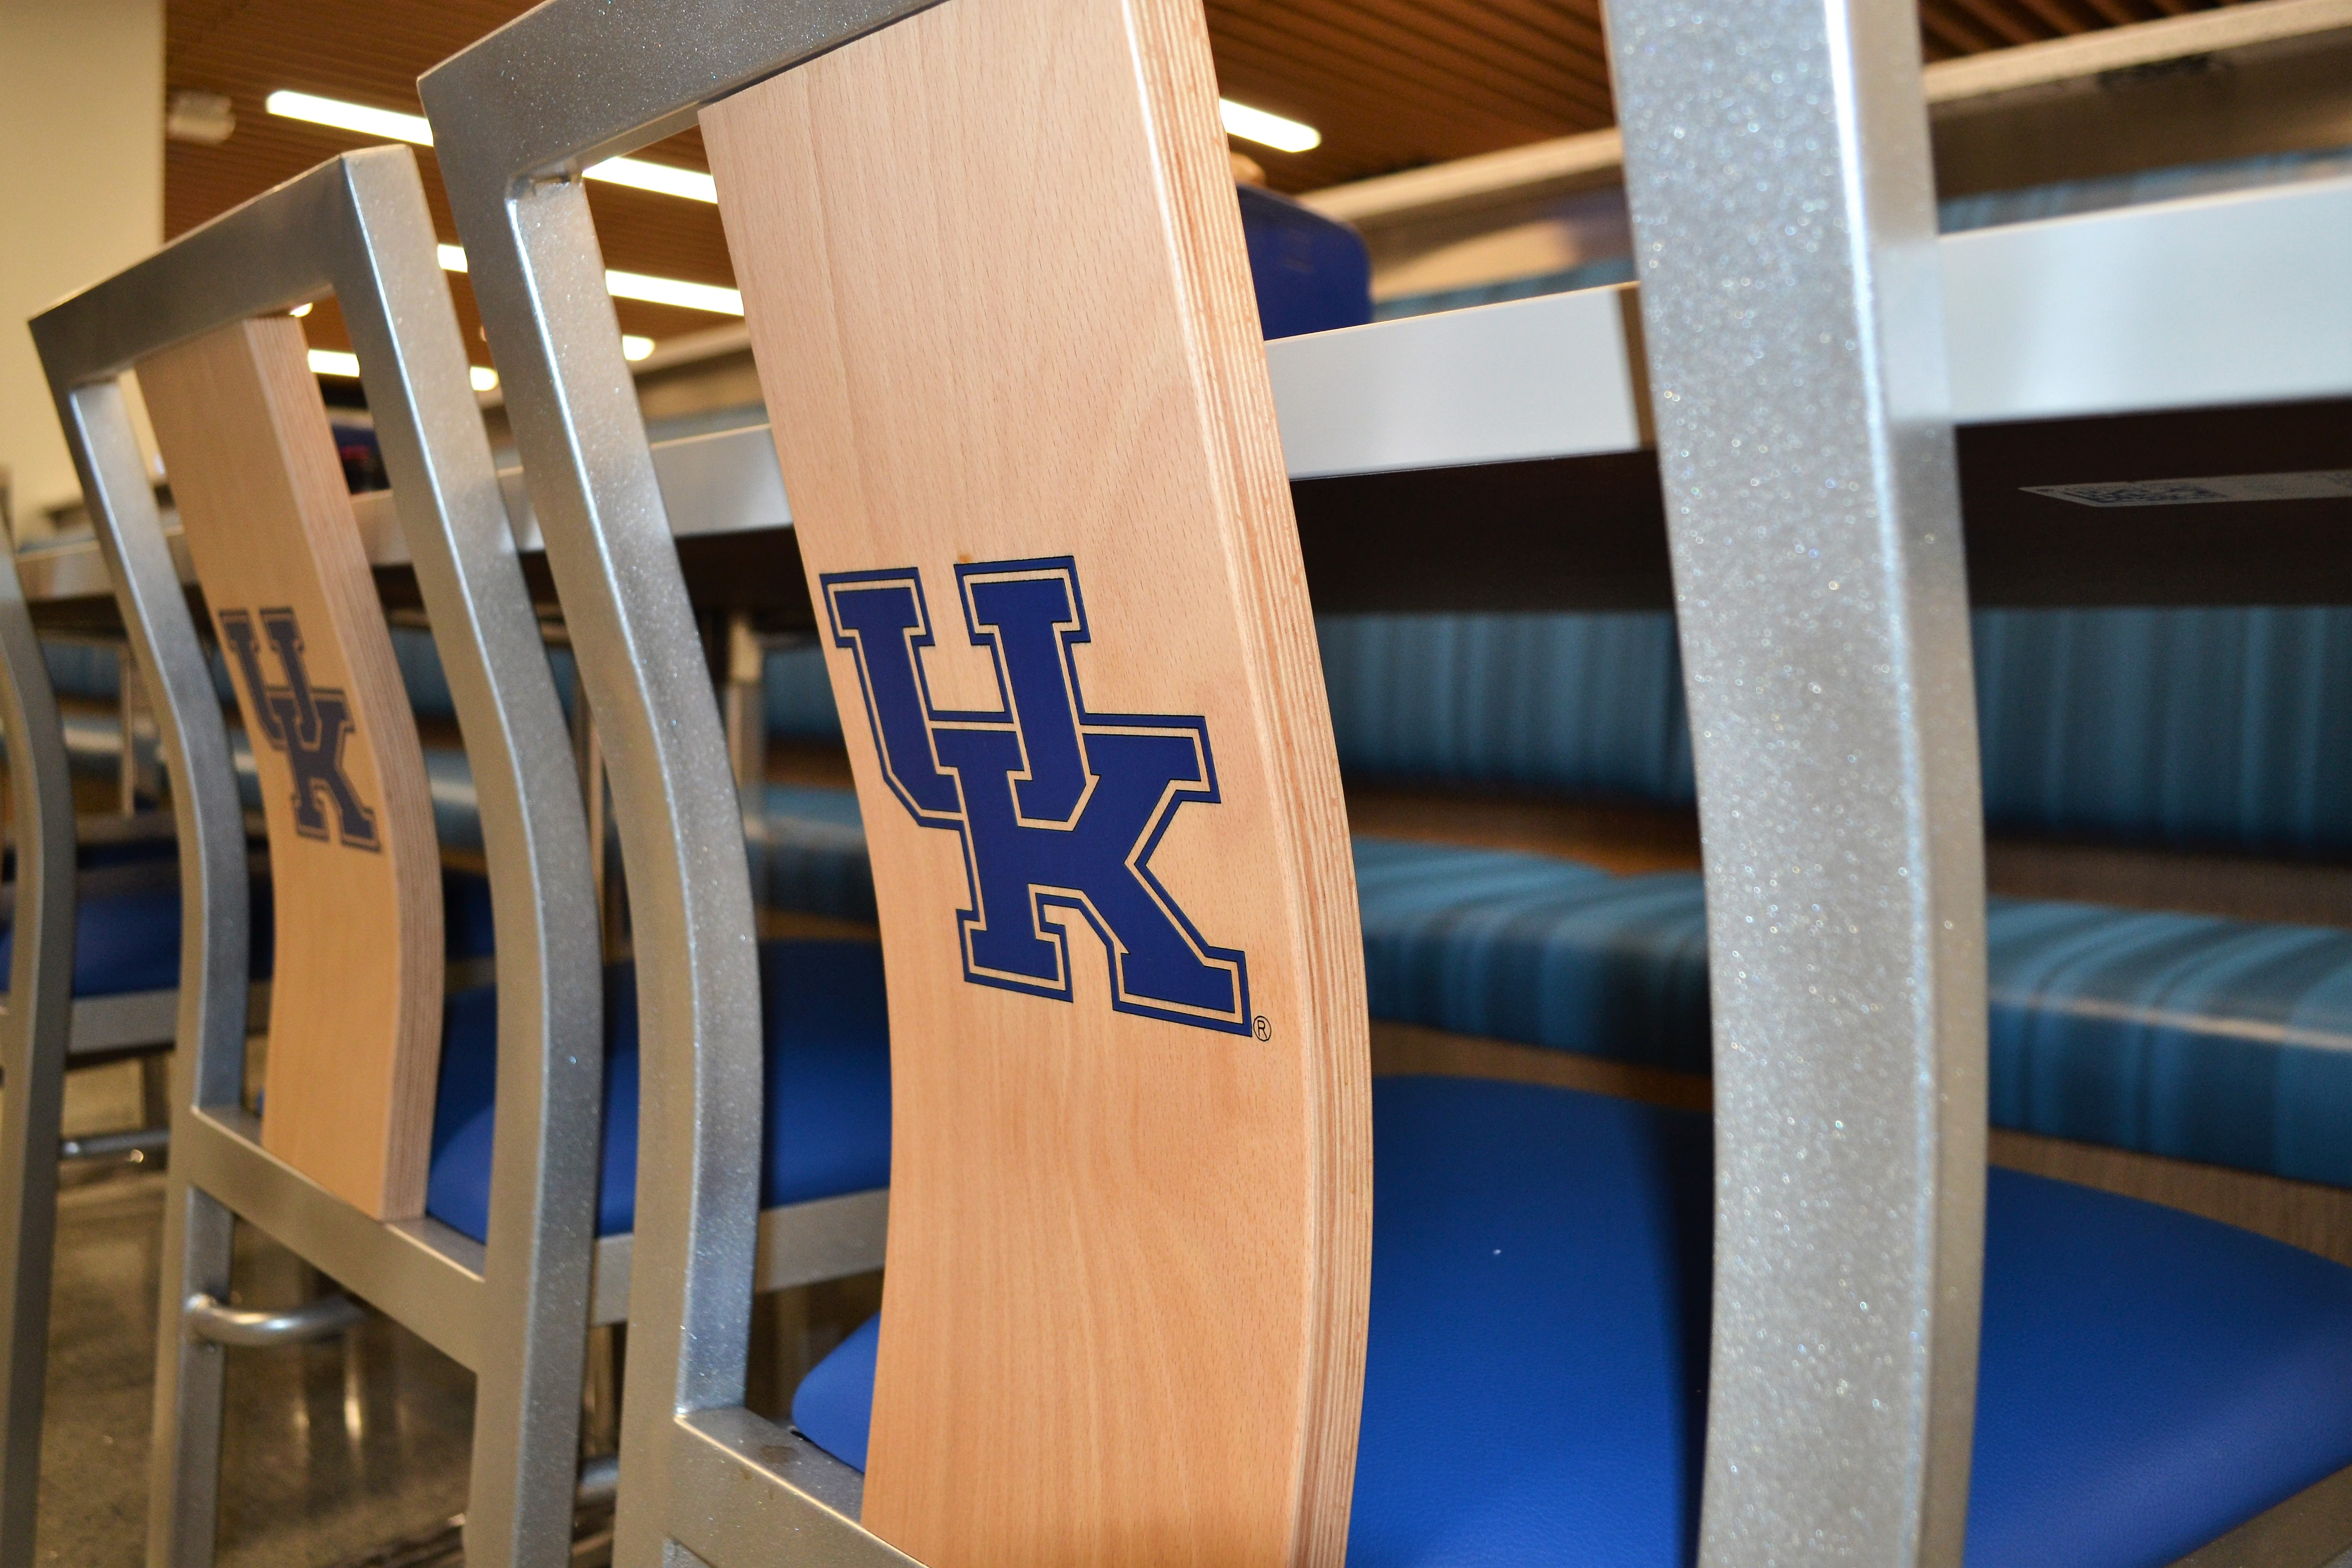 Jill Barstool_310BS_University of Kentucky_Custom Engraving Detail Shot.jpg